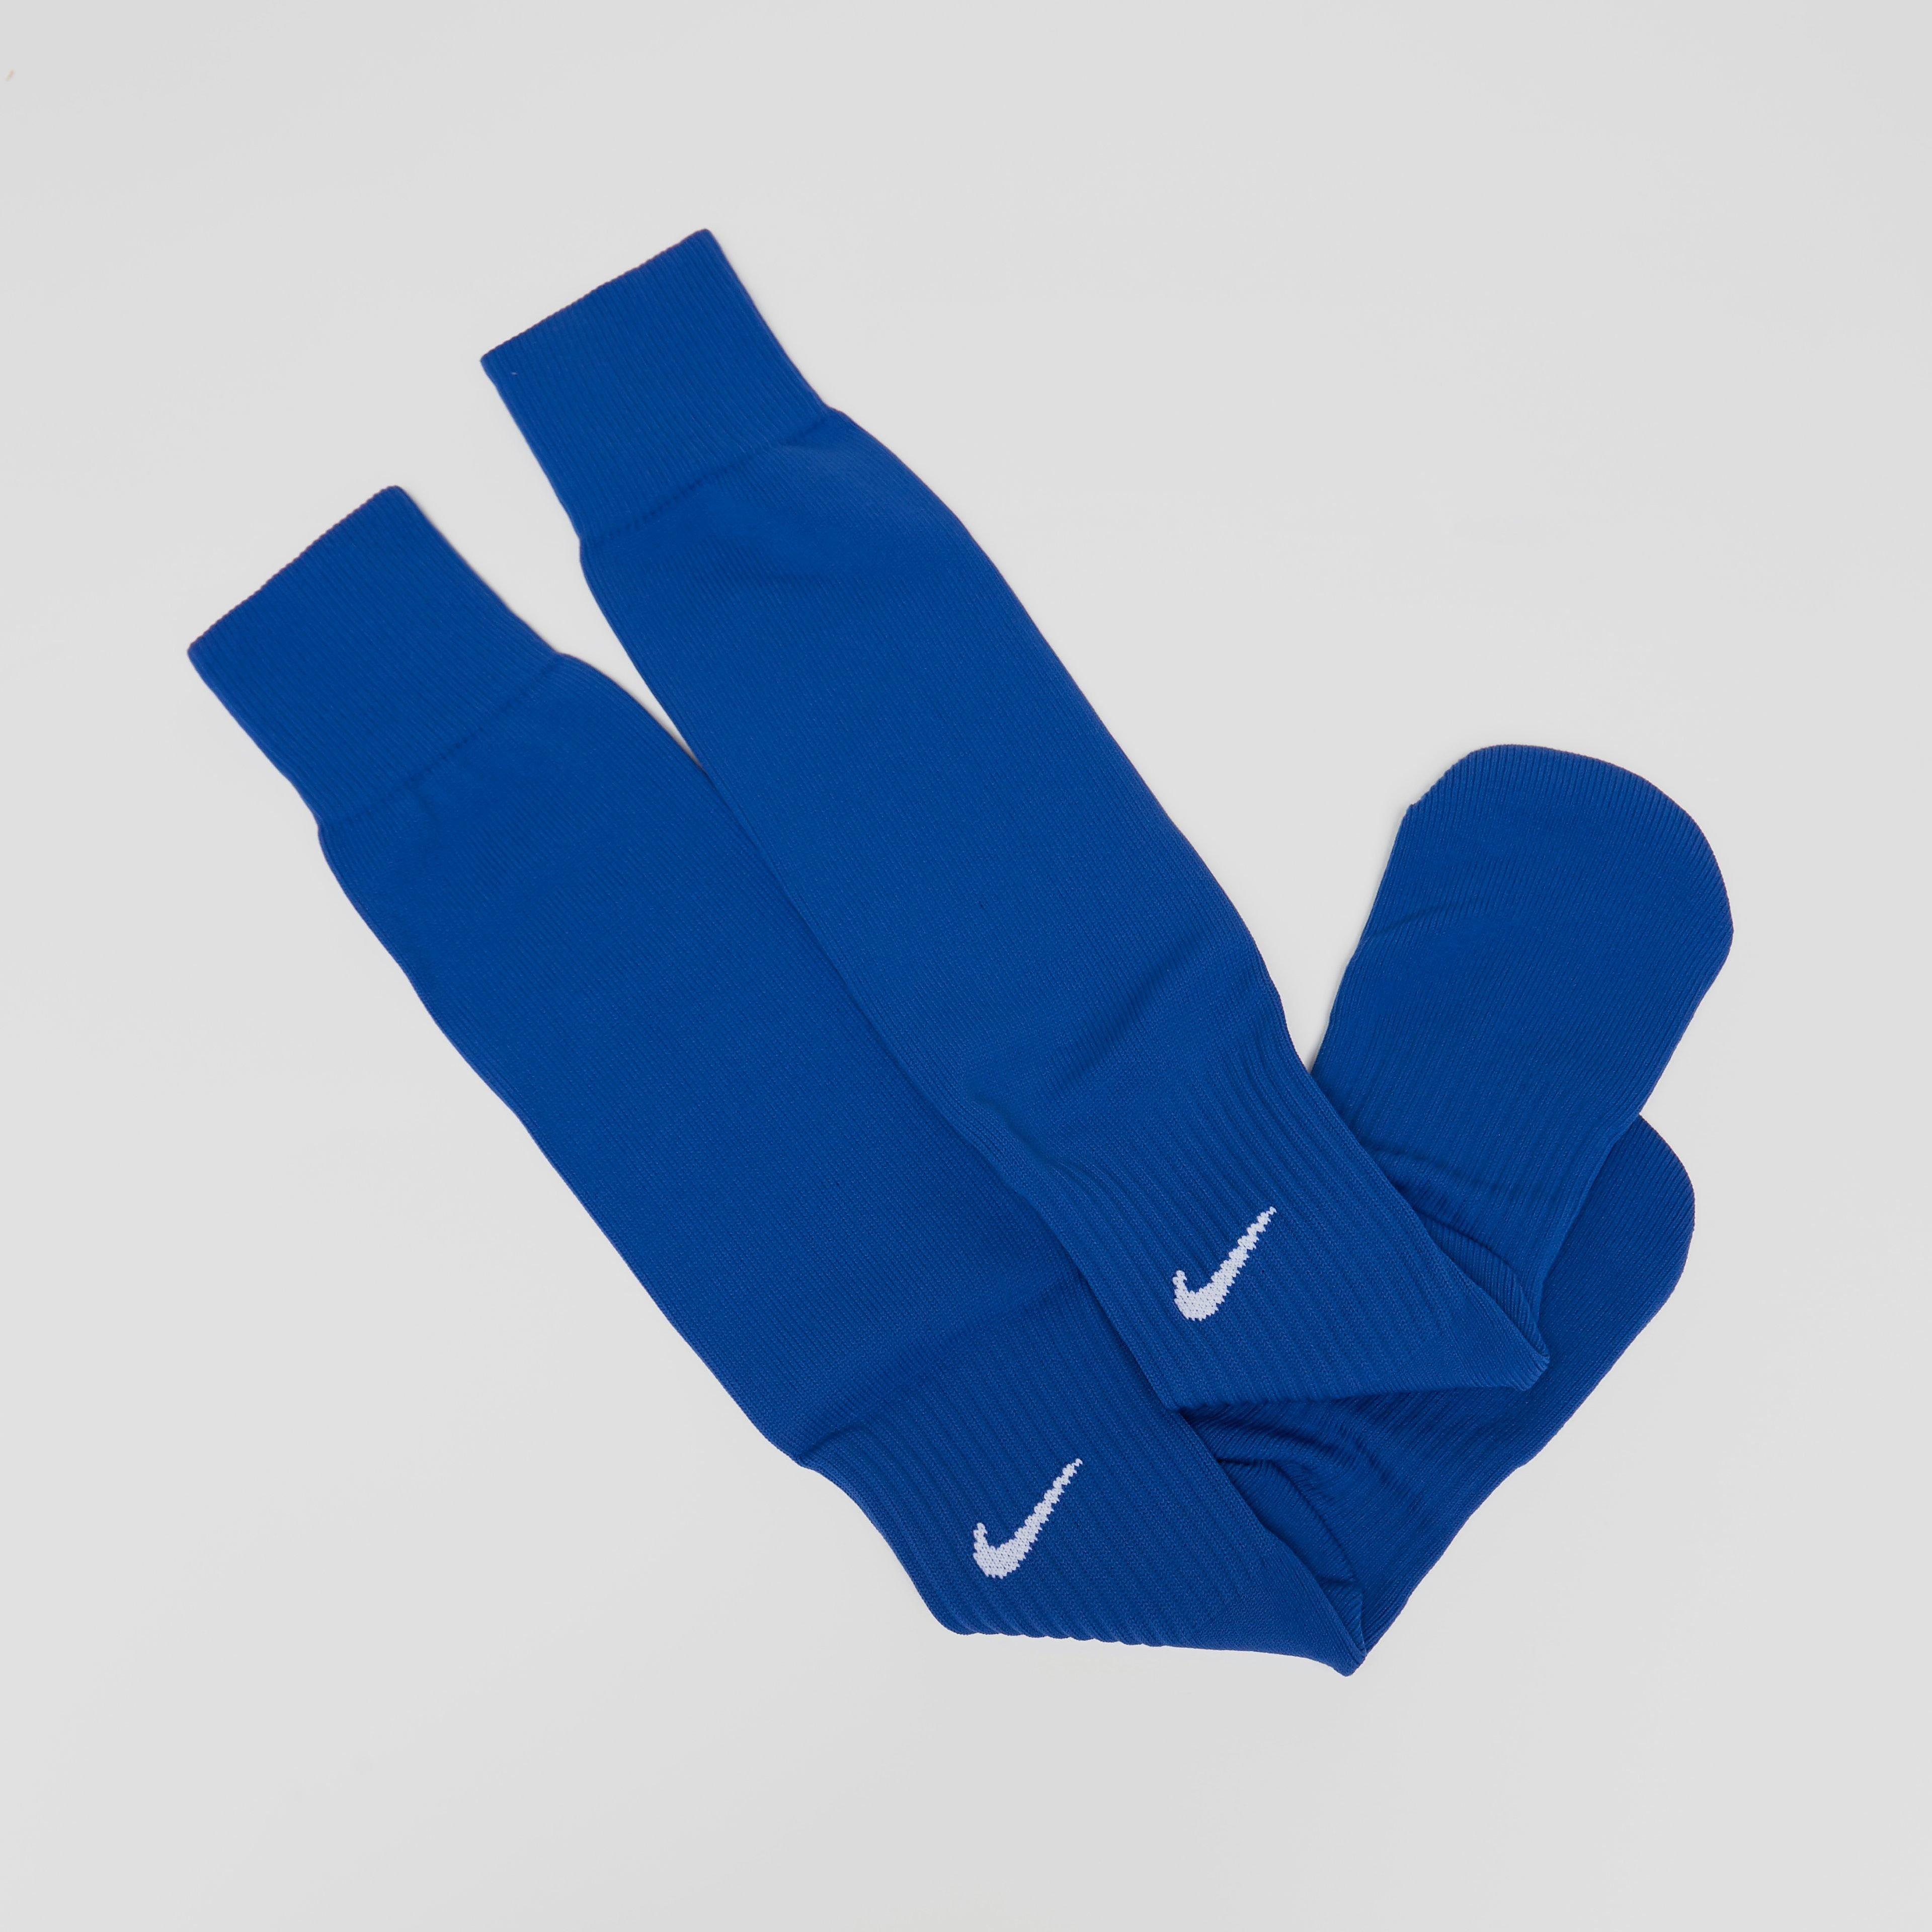 NIKE CLASSIC DRI-FIT VOETBALSOKKEN